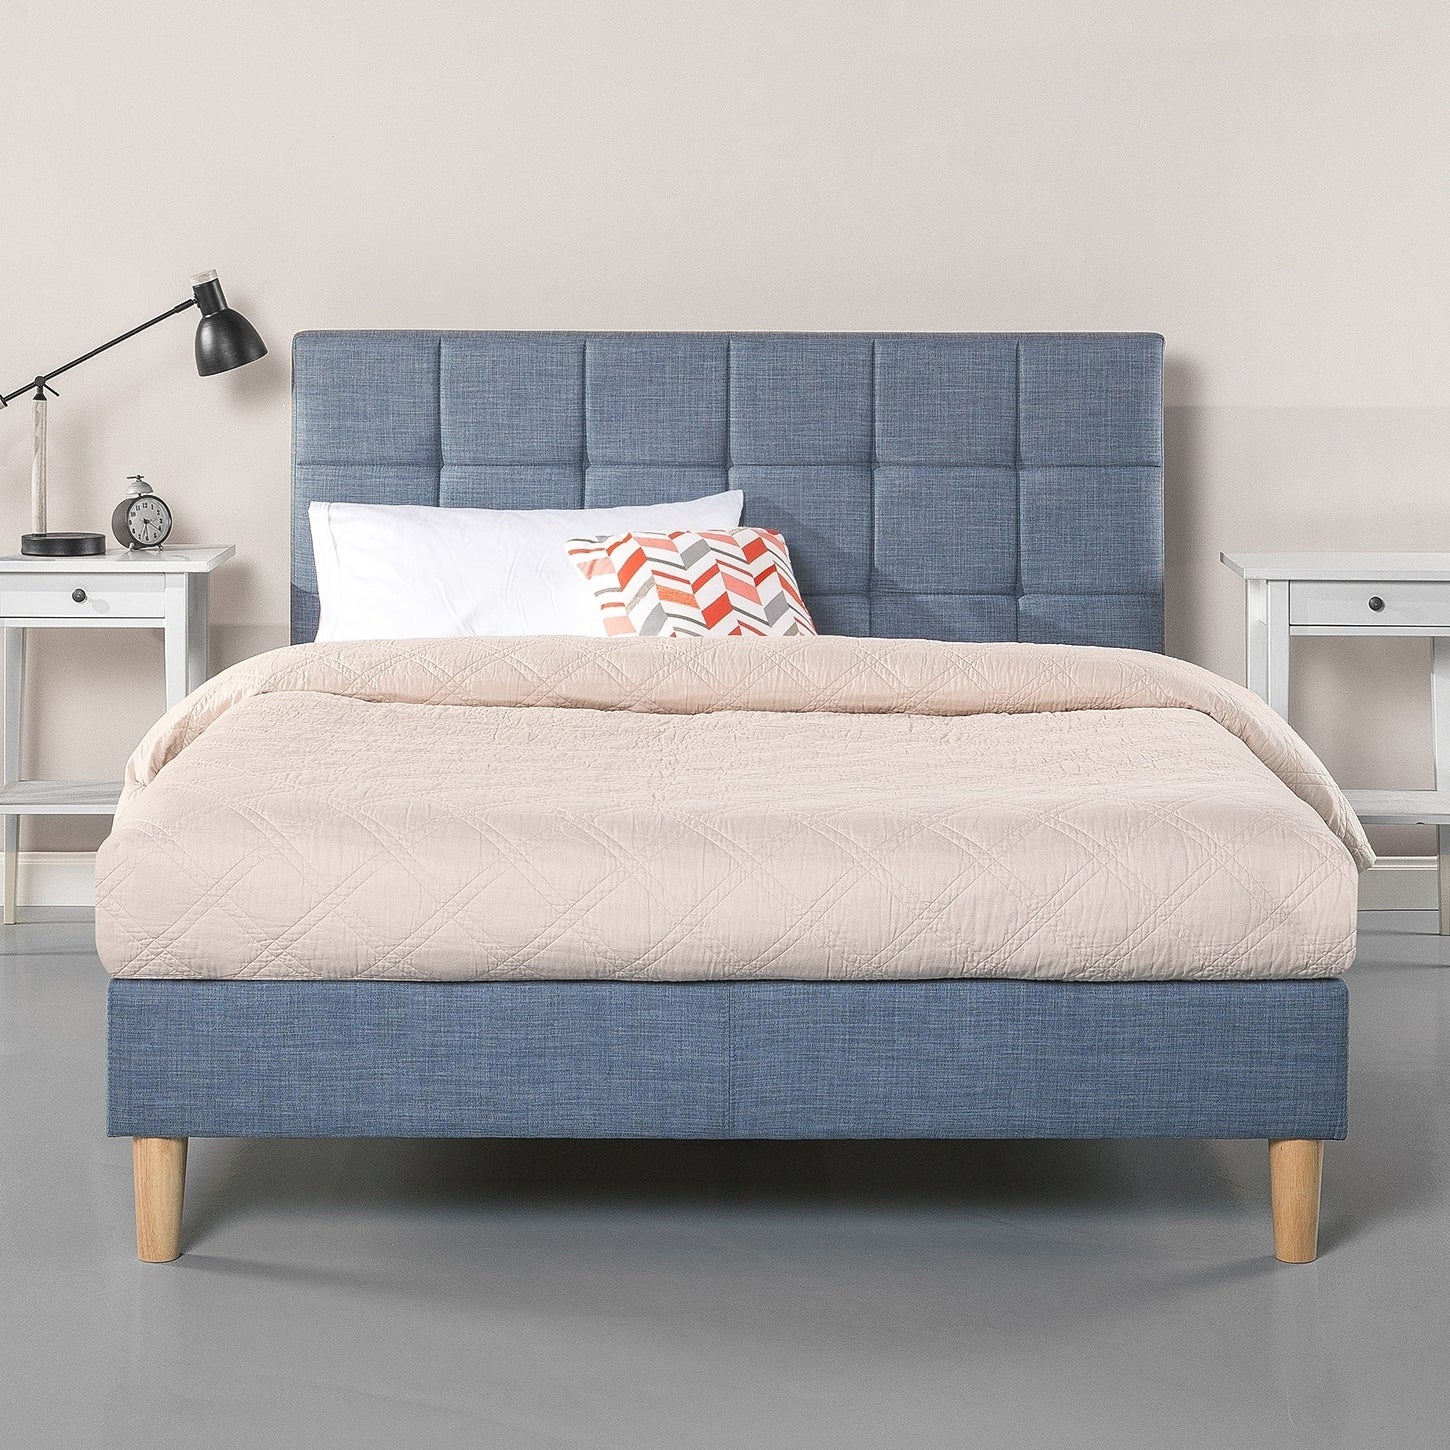 Priage By Zinus Square Sched Platform Bed Light Blue